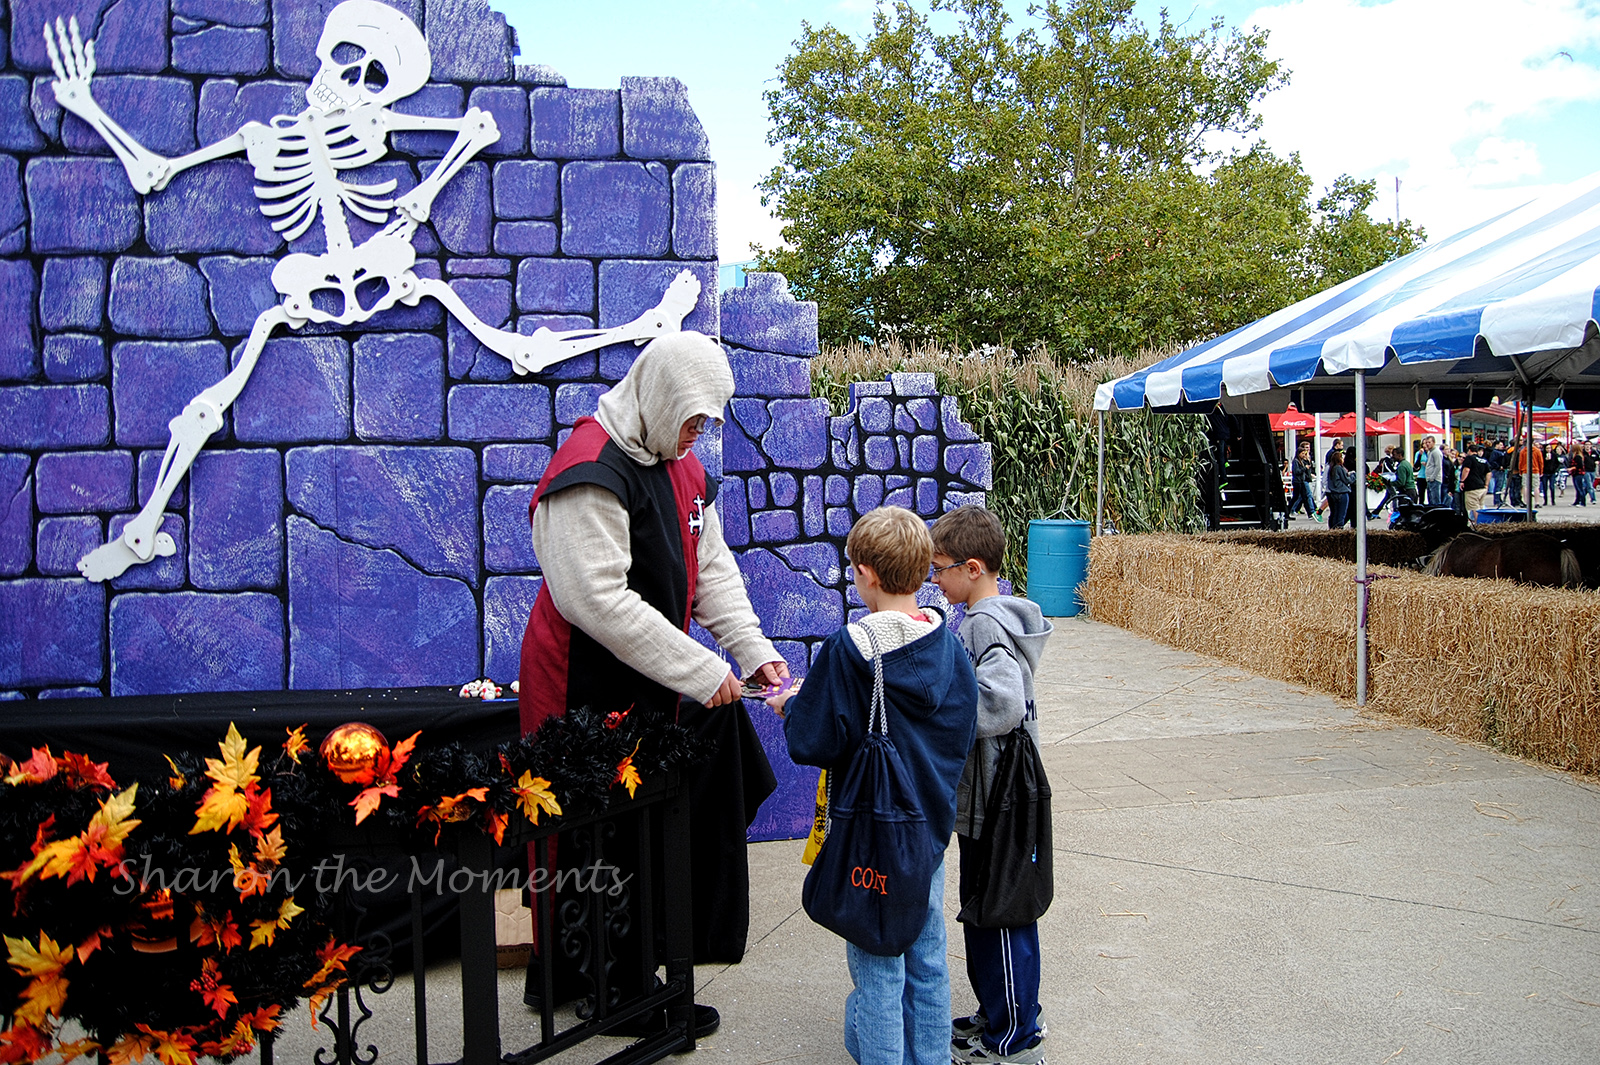 Fright or Fear or Family Fun... Last HalloWeekend at Cedar Point!|Sharon the Moments Blog